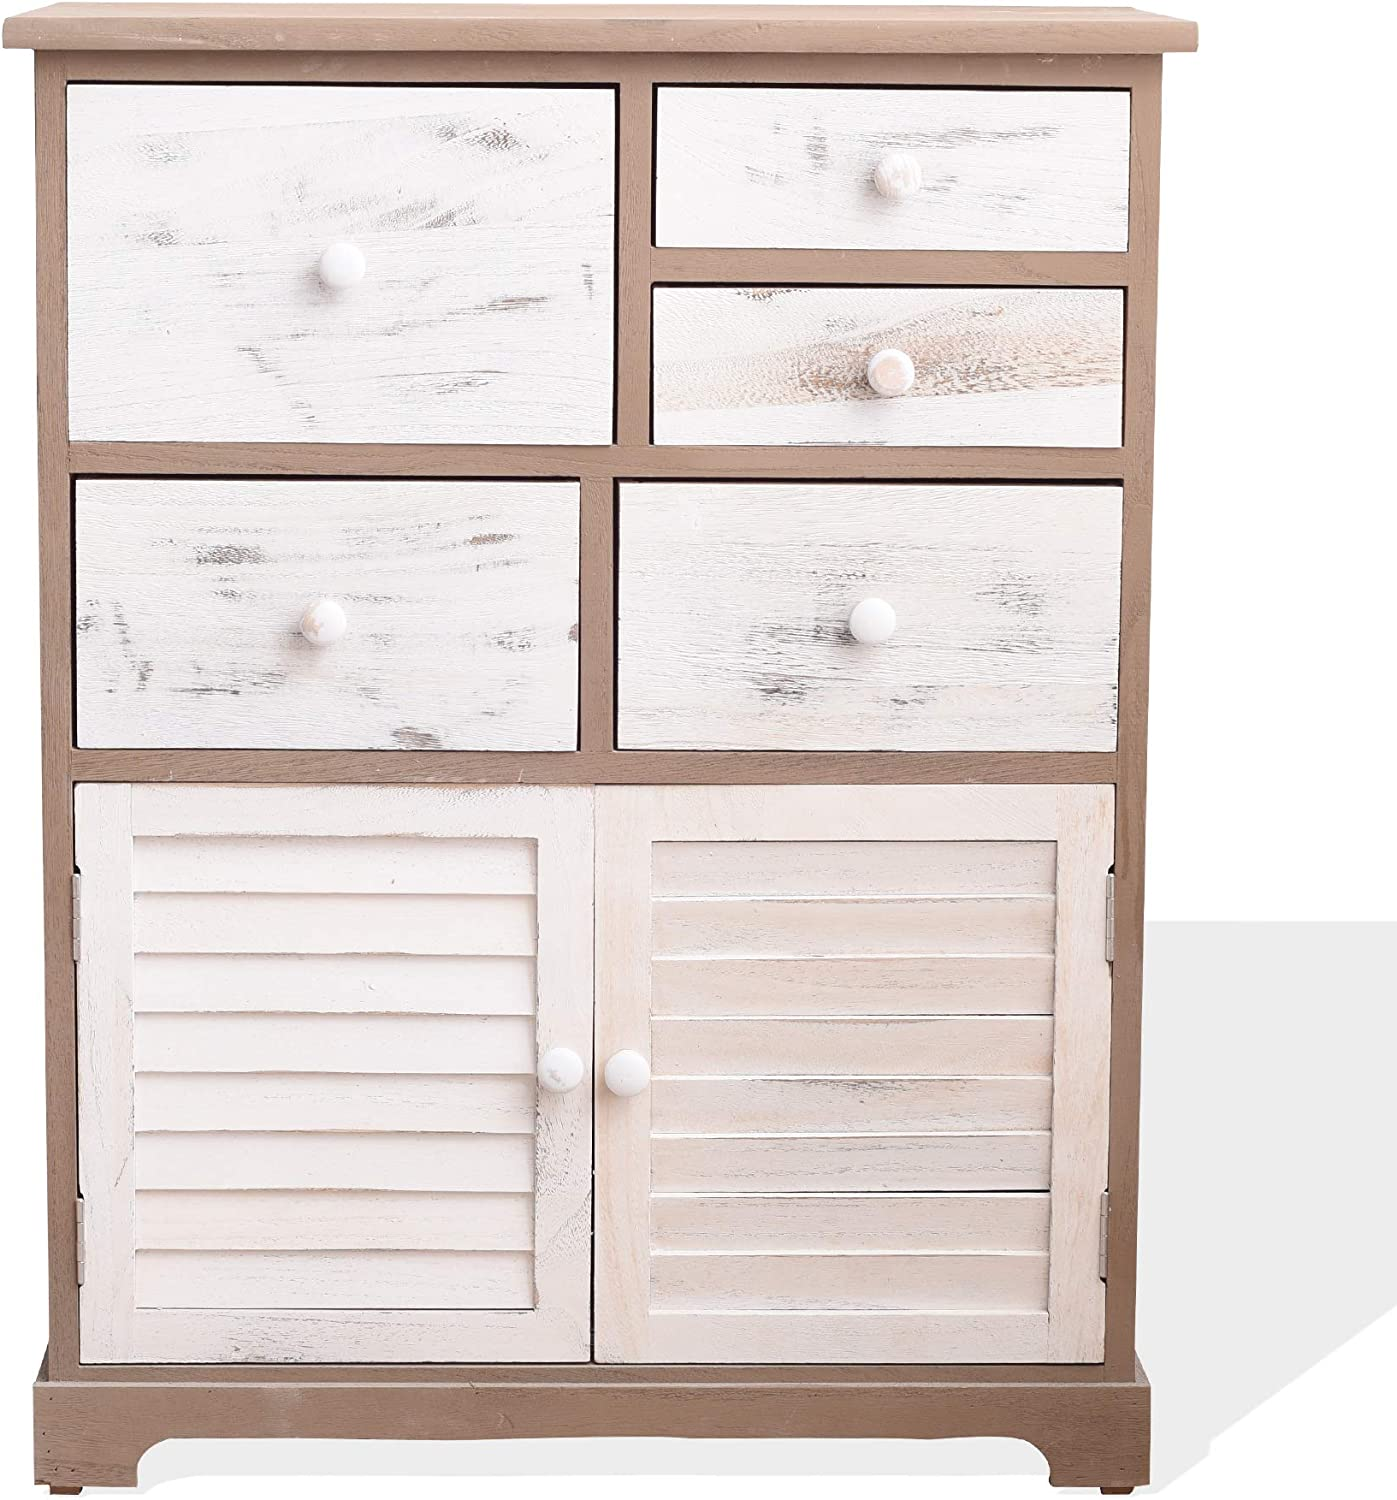 Rebecca Mobili Sideboard White Gray Cabinet Pickled Style 2 Doors 5 Drawers Bedroom Bathroom Home Decor 77 X 60 X 30 Cm H X W X D Art Re6075 Amazon Co Uk Kitchen Home